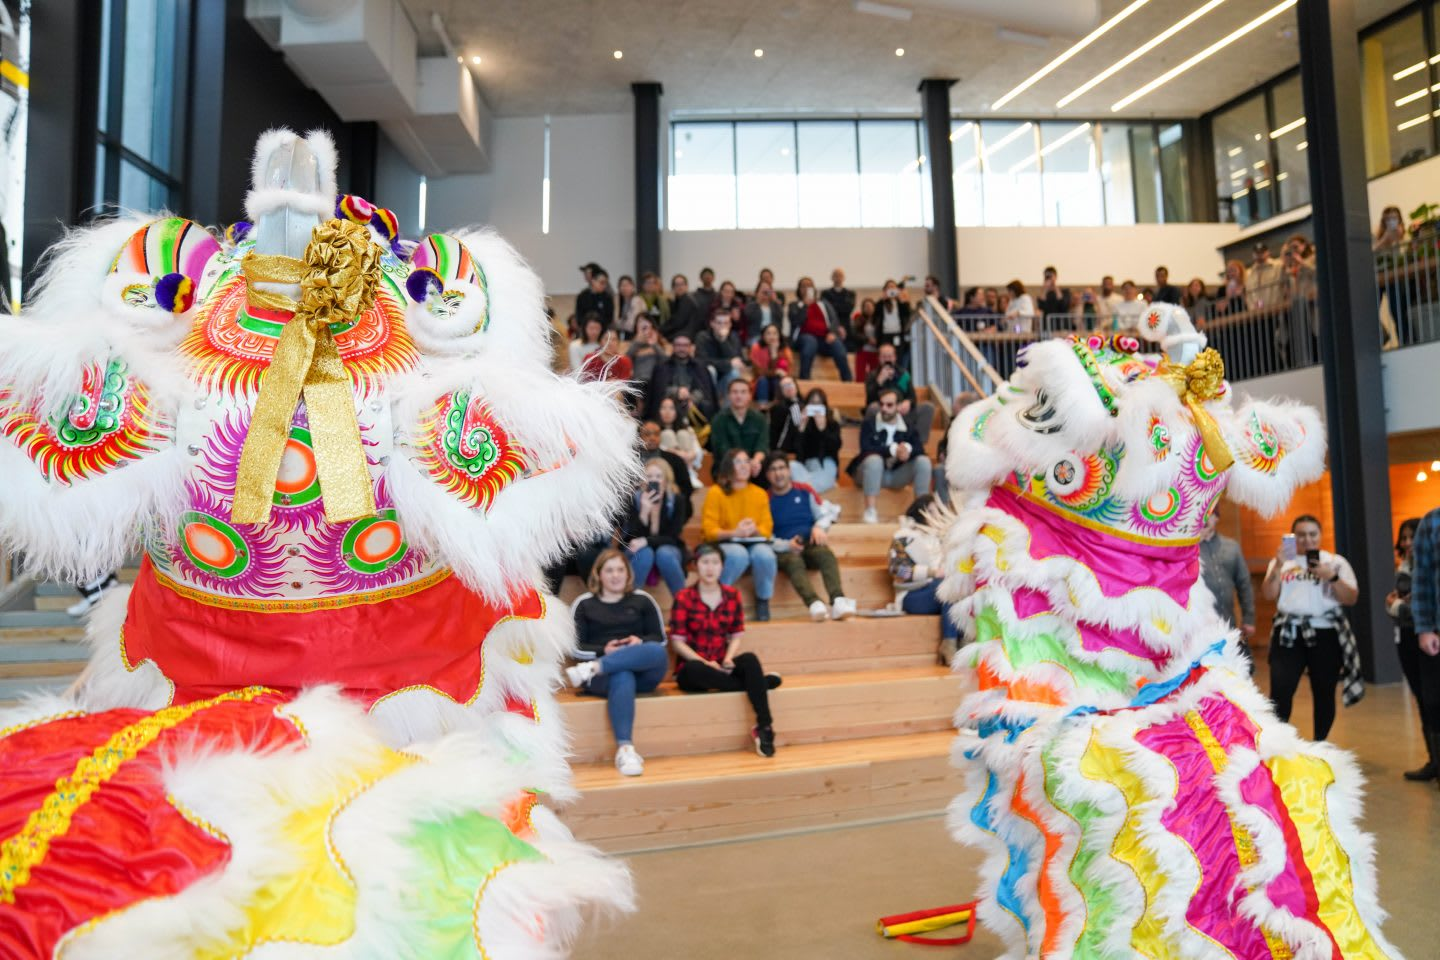 Lion dancing performance in front of employees, adidas HQ, North America, ERG, employees